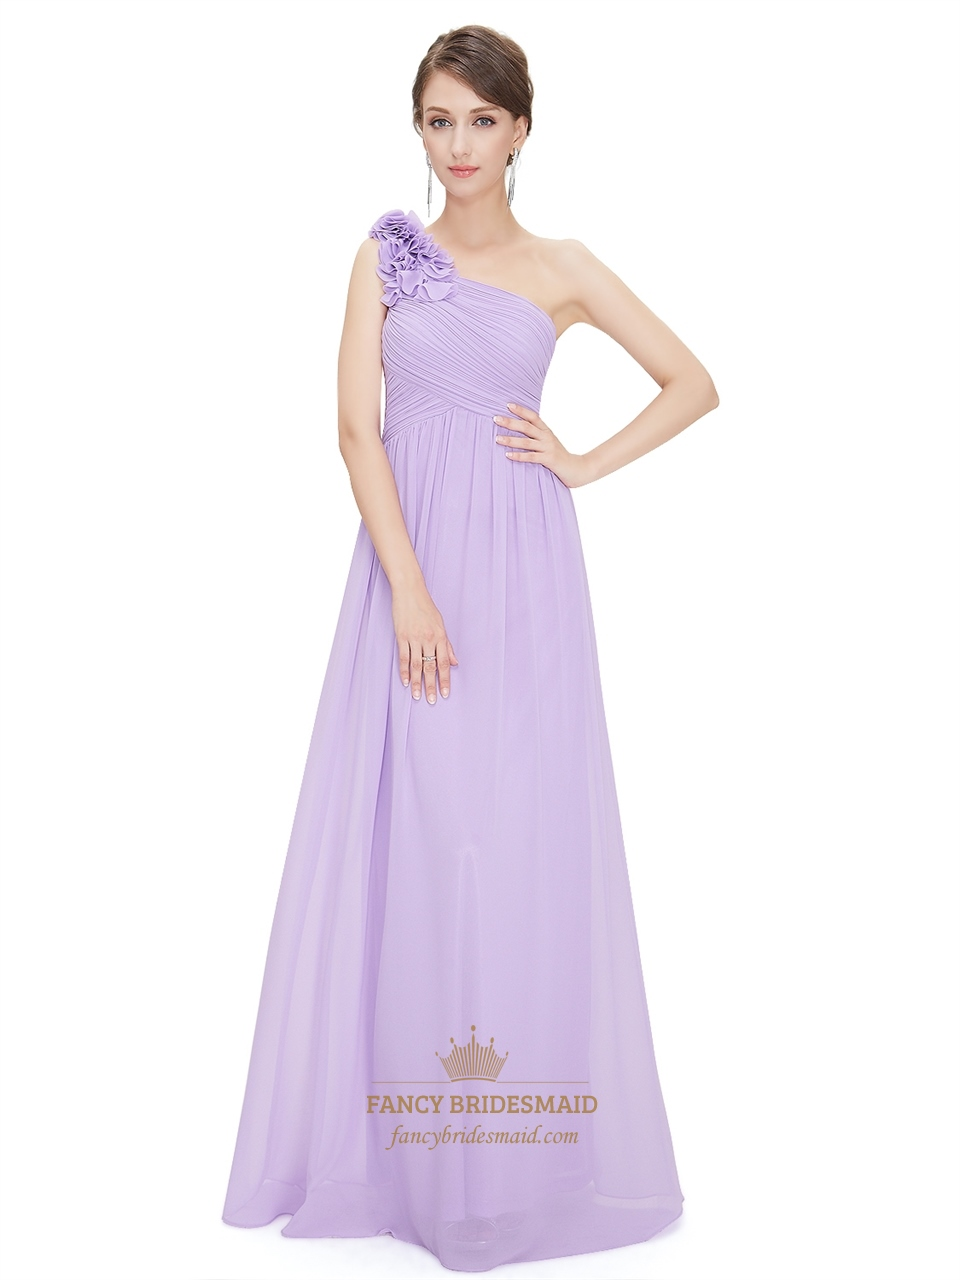 907b86cd4 Lilac Chiffon One Shoulder Bridesmaid Dress With Flower Shoulder Strap SKU  -F622